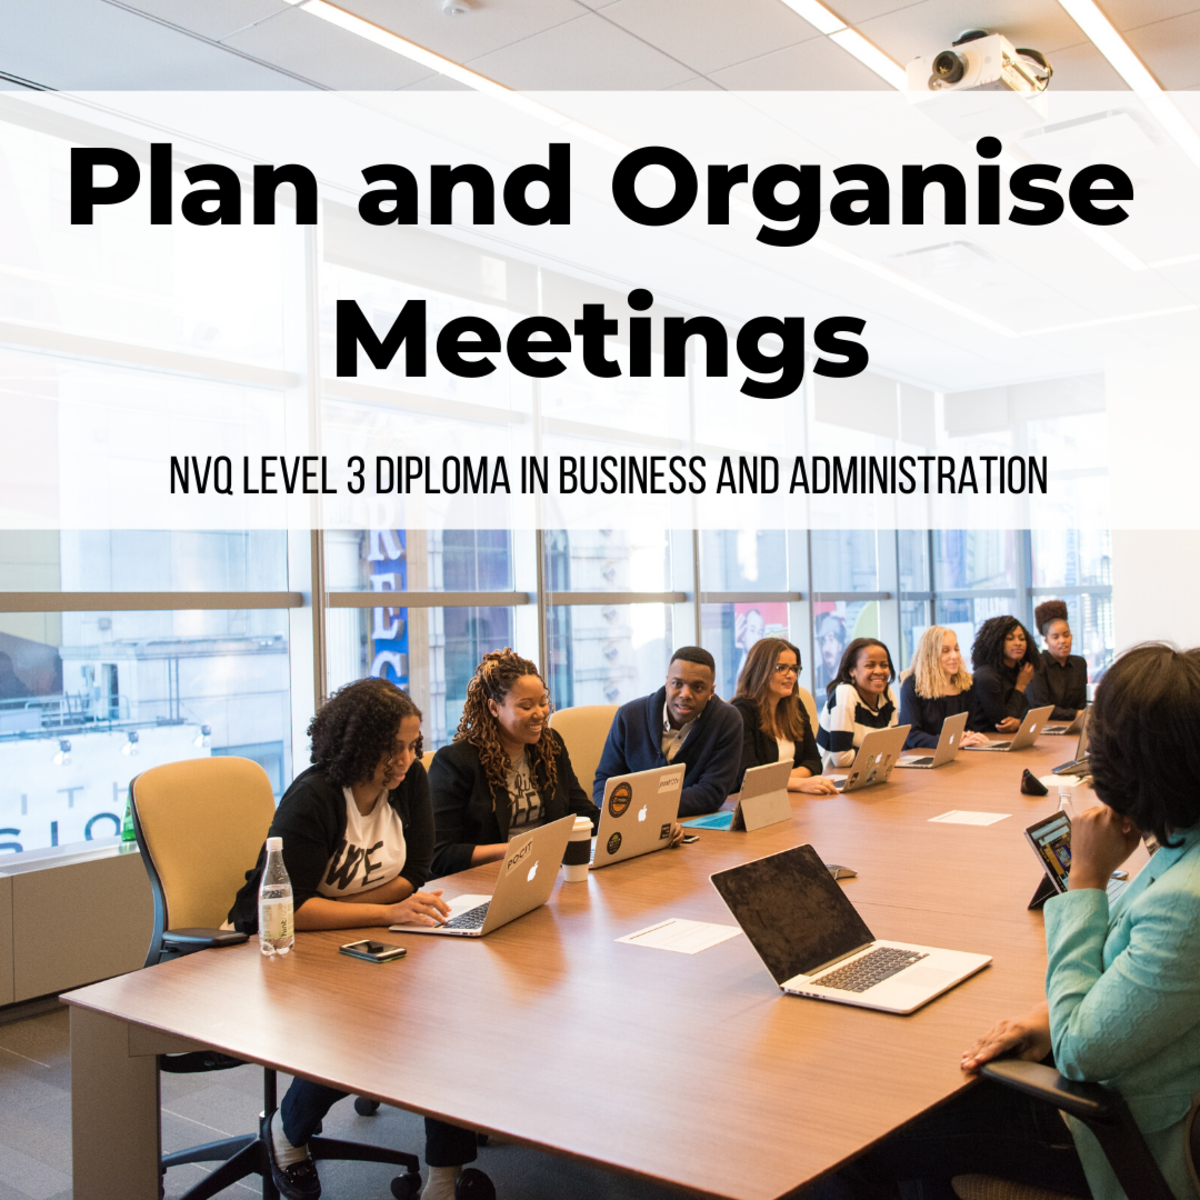 Review important aspects of planning and organising meetings in this unit.